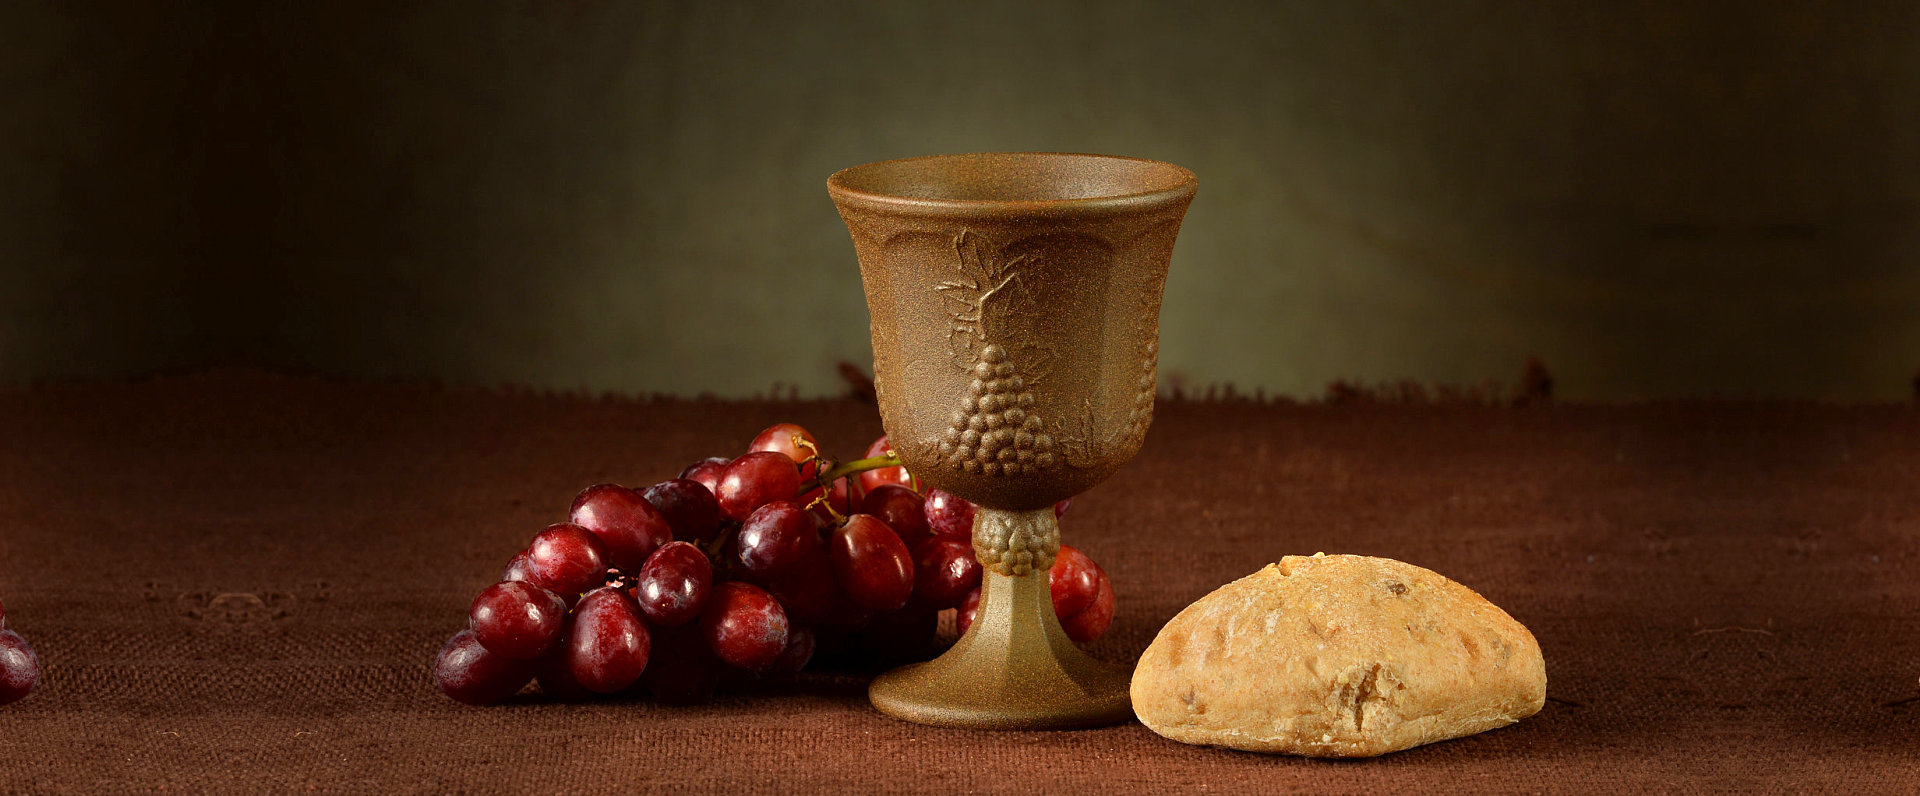 bread, cup, and grapes